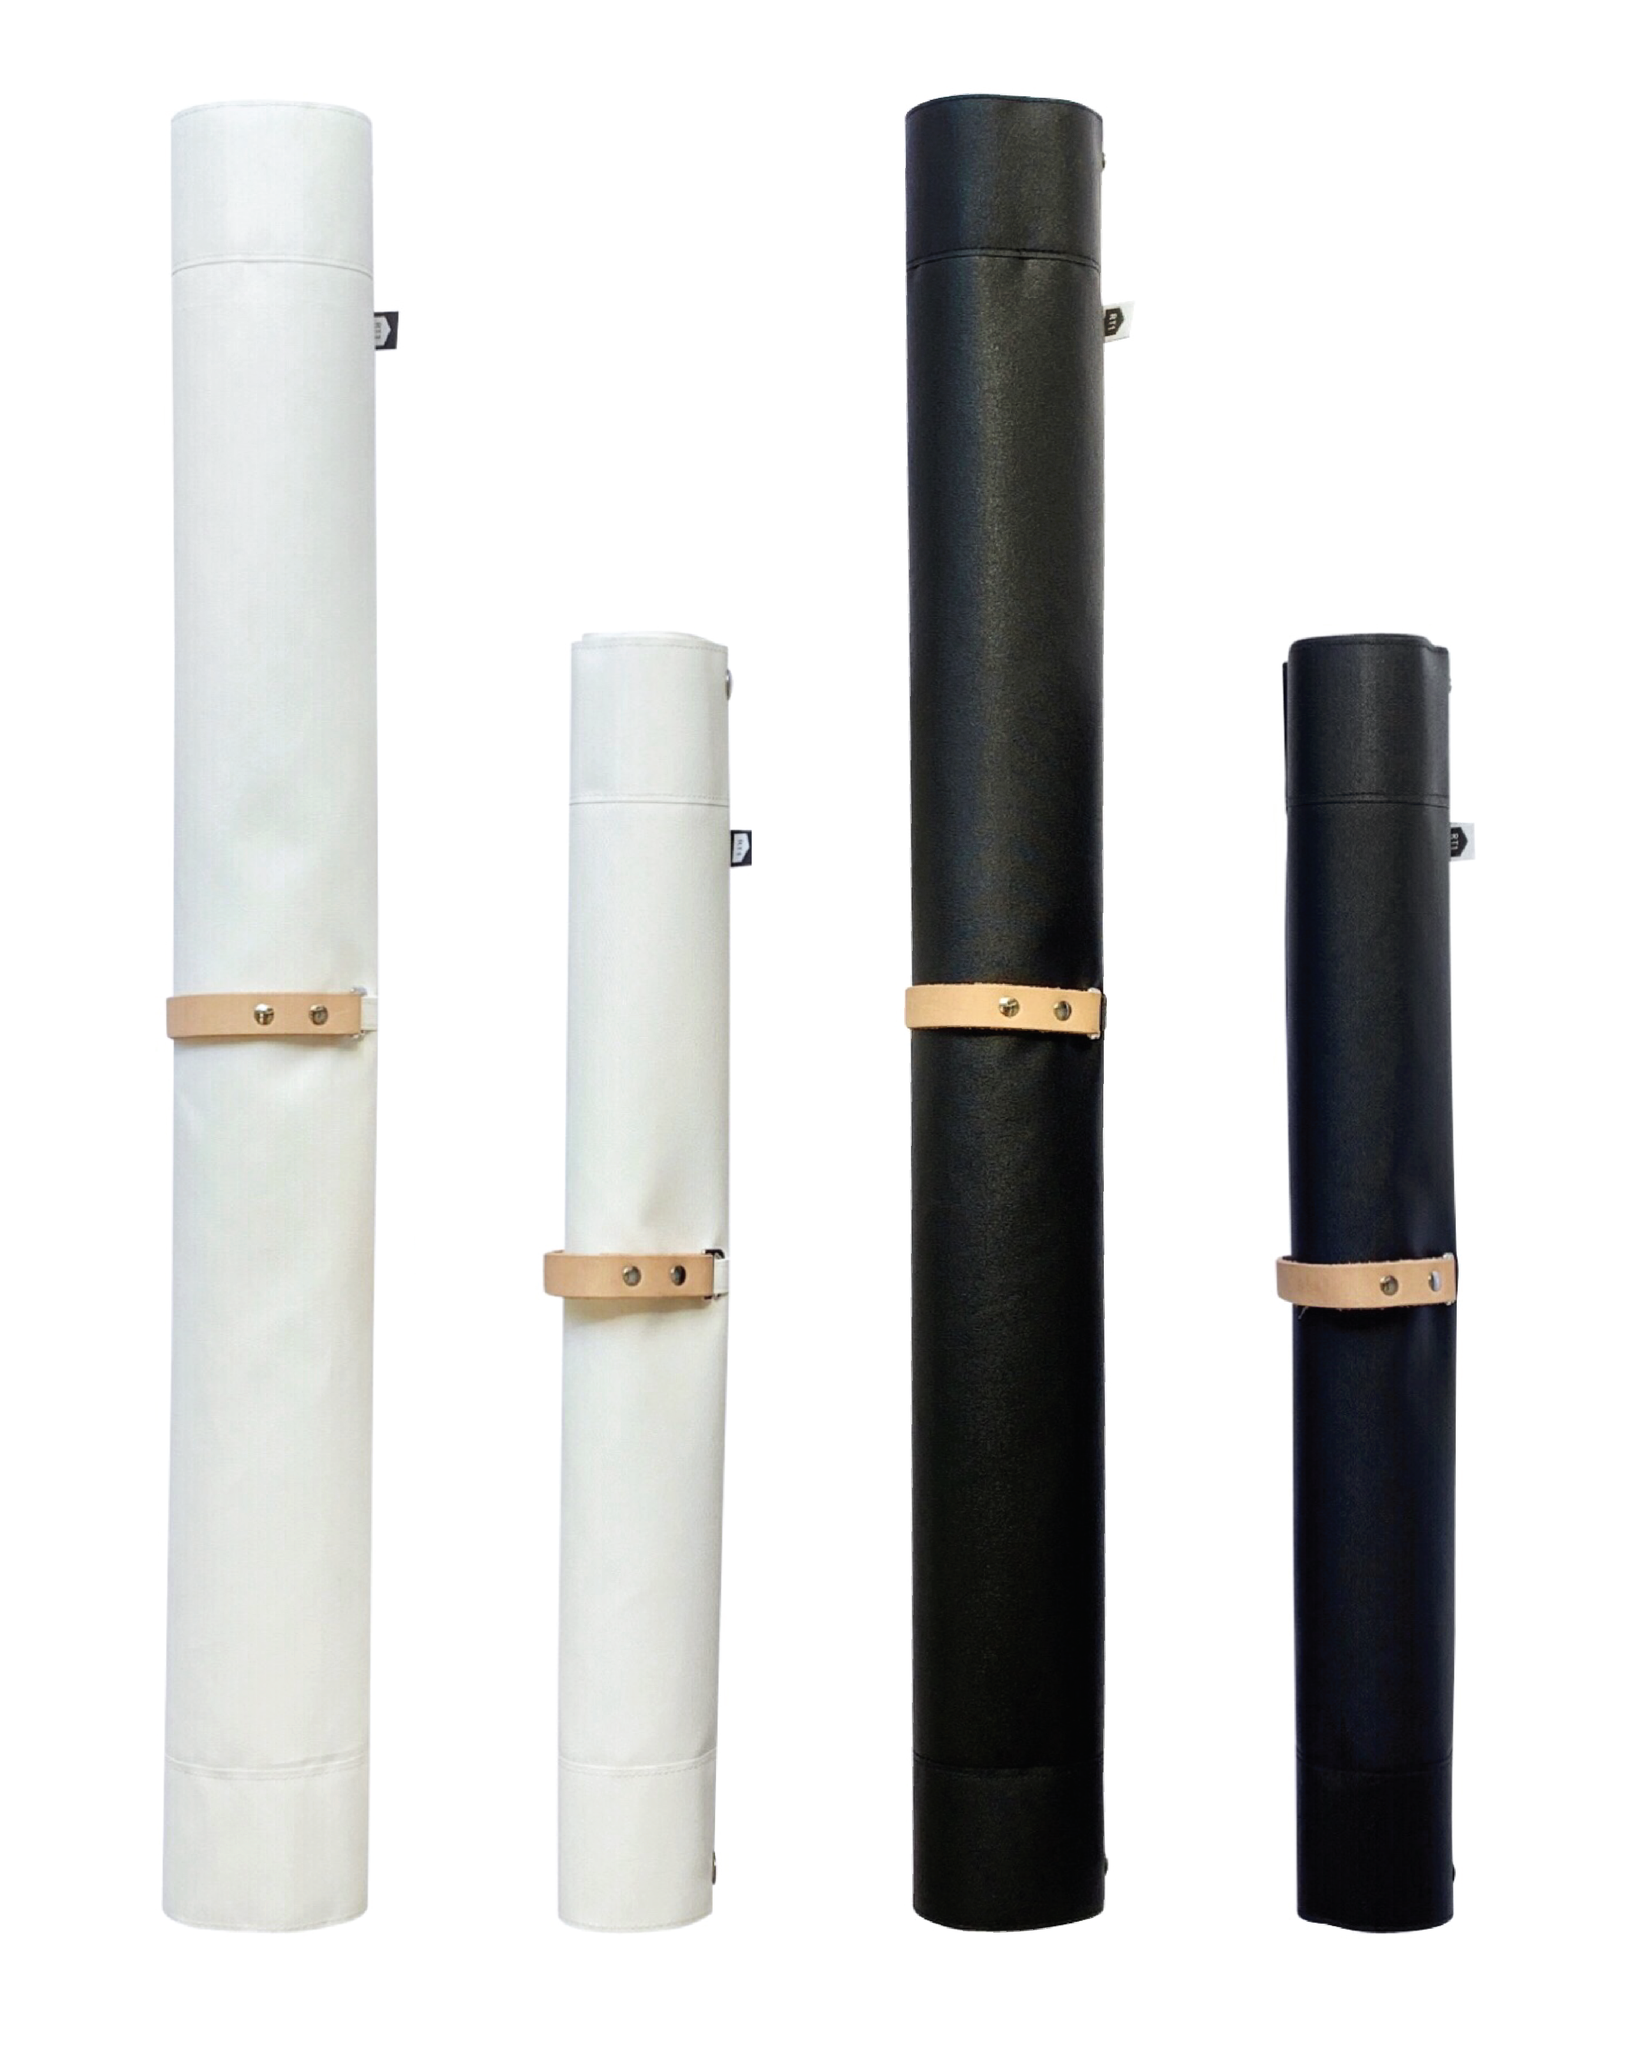 The tarp rolls into a compact tube to store away